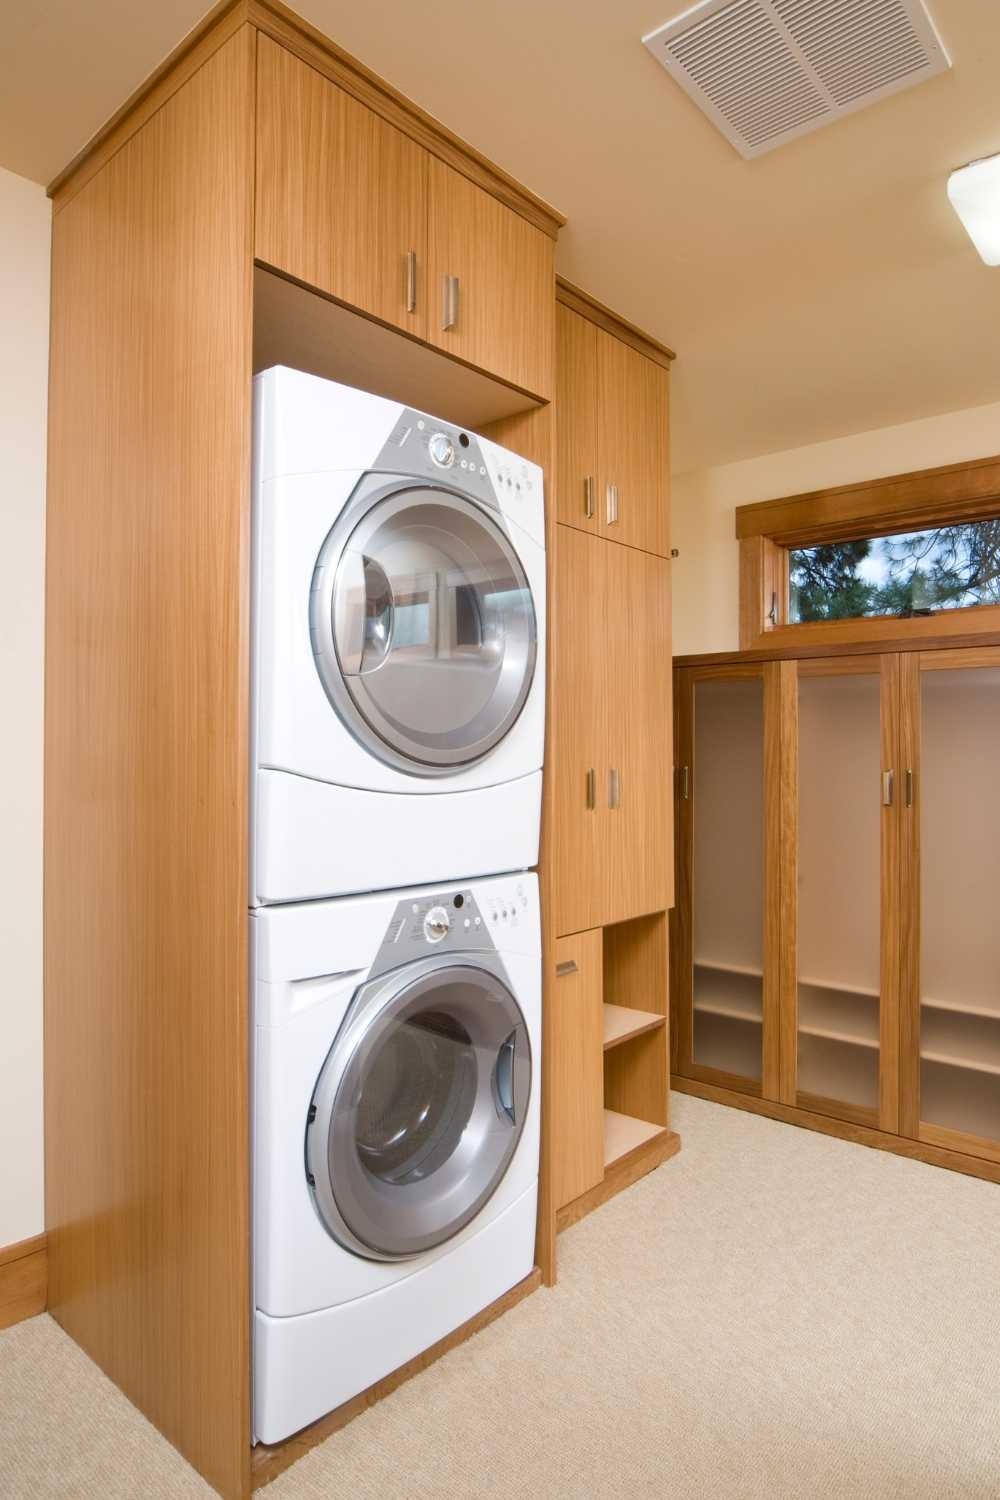 20 Small Laundry Room Ideas That'll Make You Swoon